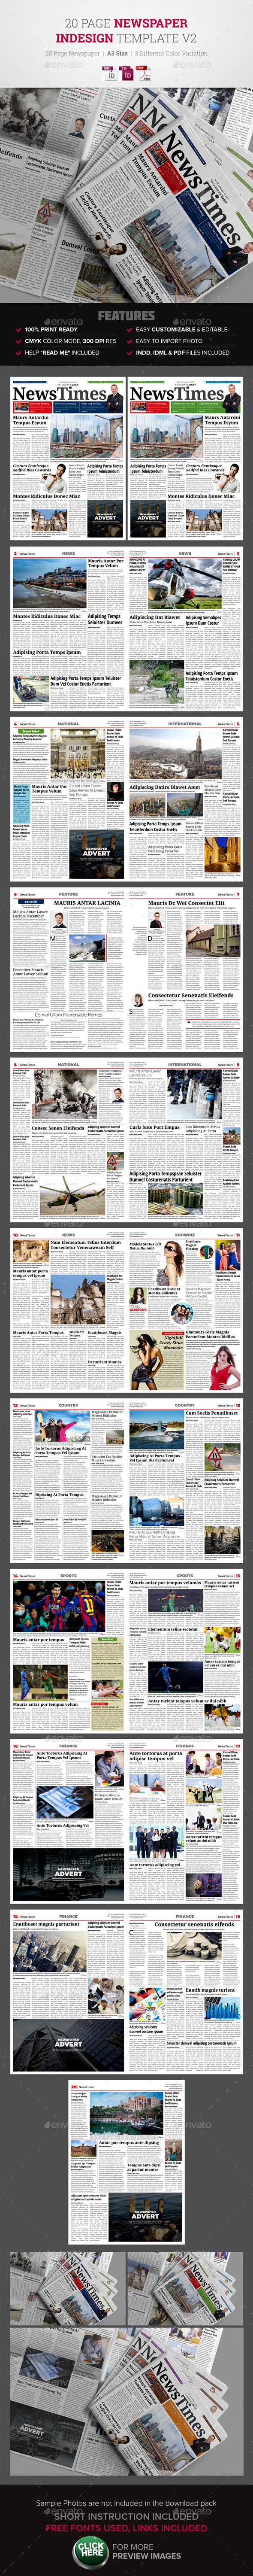 20 Page Newspaper Design v2 | Pinterest | Diseño editorial ...